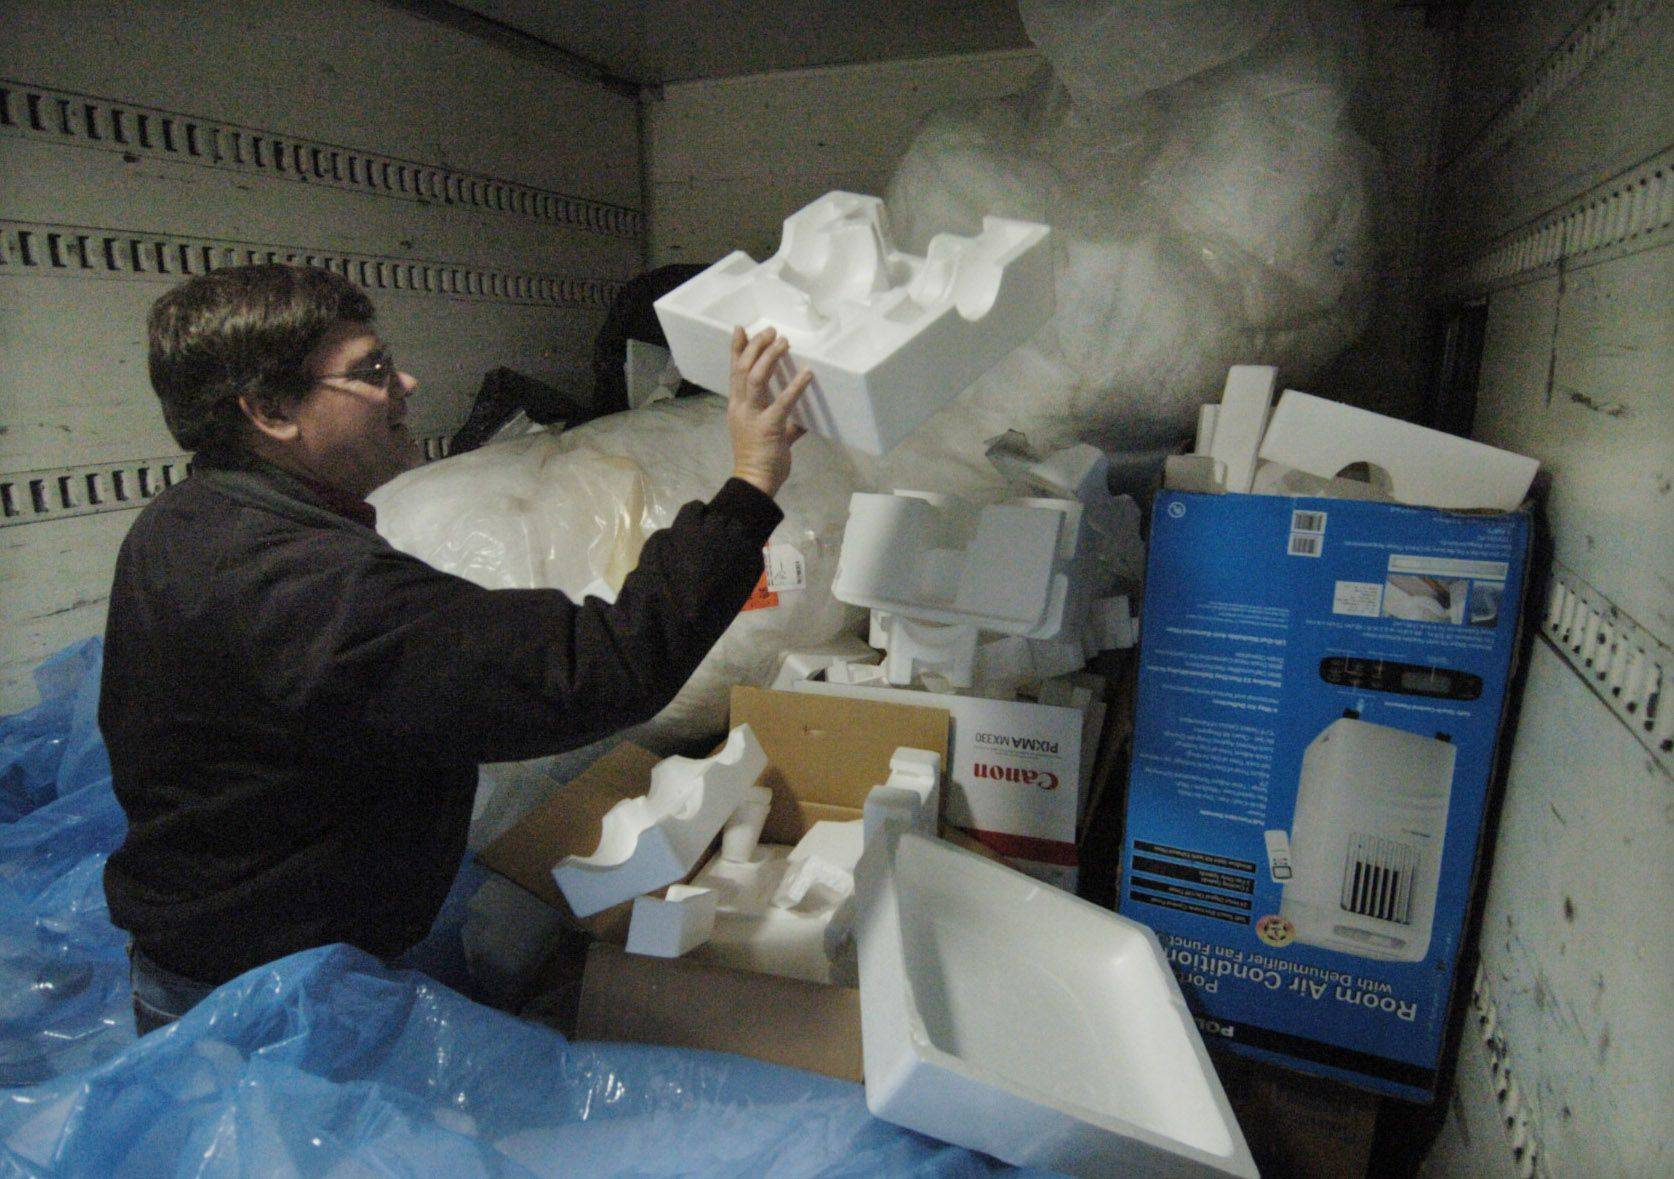 Ken Santowski, owner of Chicago Logistic Service in Elgin, goes through a pile of foam products Friday. His business serves as a drop-off facility, and Santowski also does pickups in Algonquin, Elgin and Lakewood.